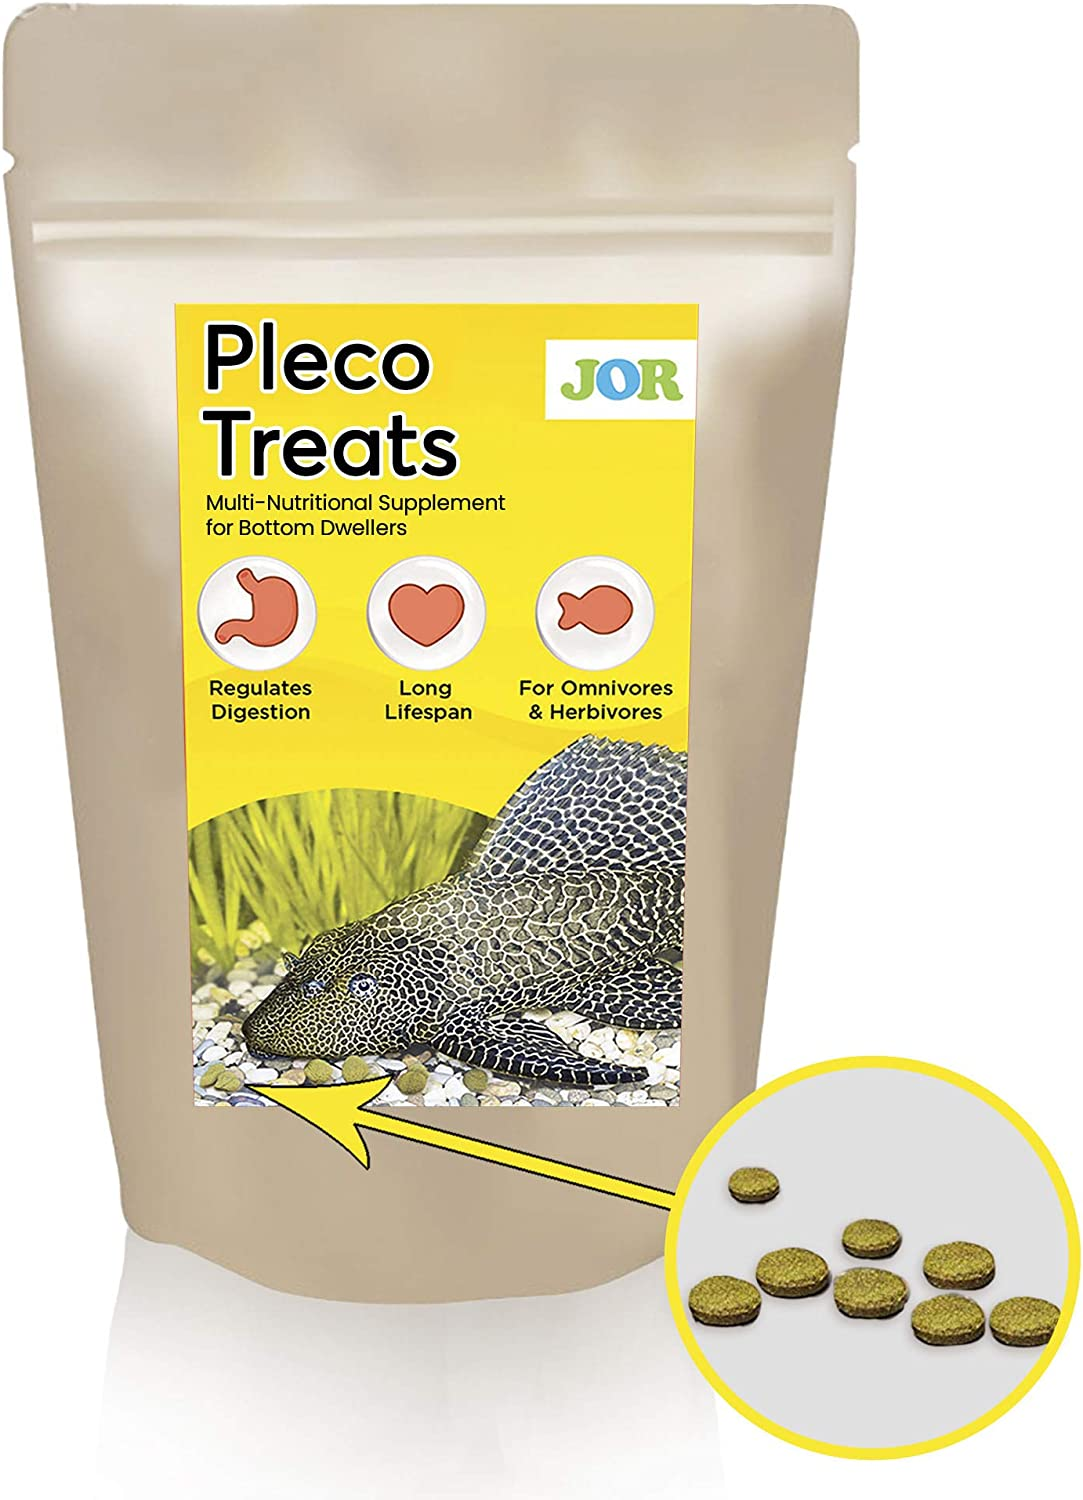 JOR Pleco Treats, Disc-shaped Supplement for Bottom Feeders, Strengthens Overall Development, Supports Better Digestion, Snail Food for Shell Development and Repair, 2.8 oz. per Pack